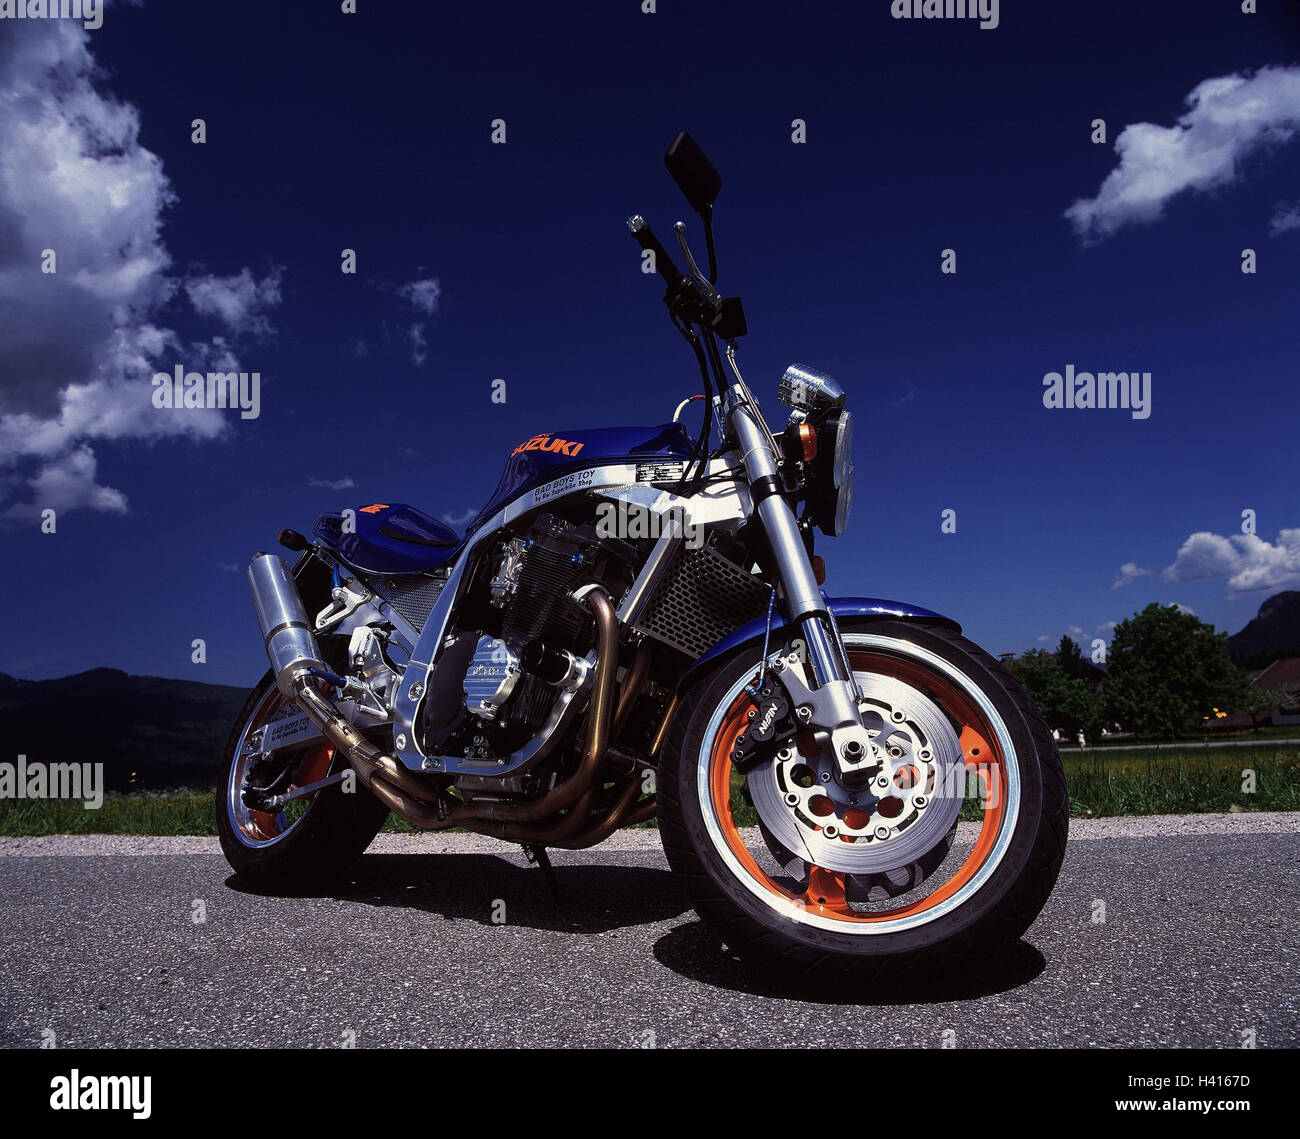 Motorcycle, Suzuki, GSX R 1100, superbike RW mood, outside, 2 force, motorcycle, automobile, motorcycle type, tuned Stock Photo